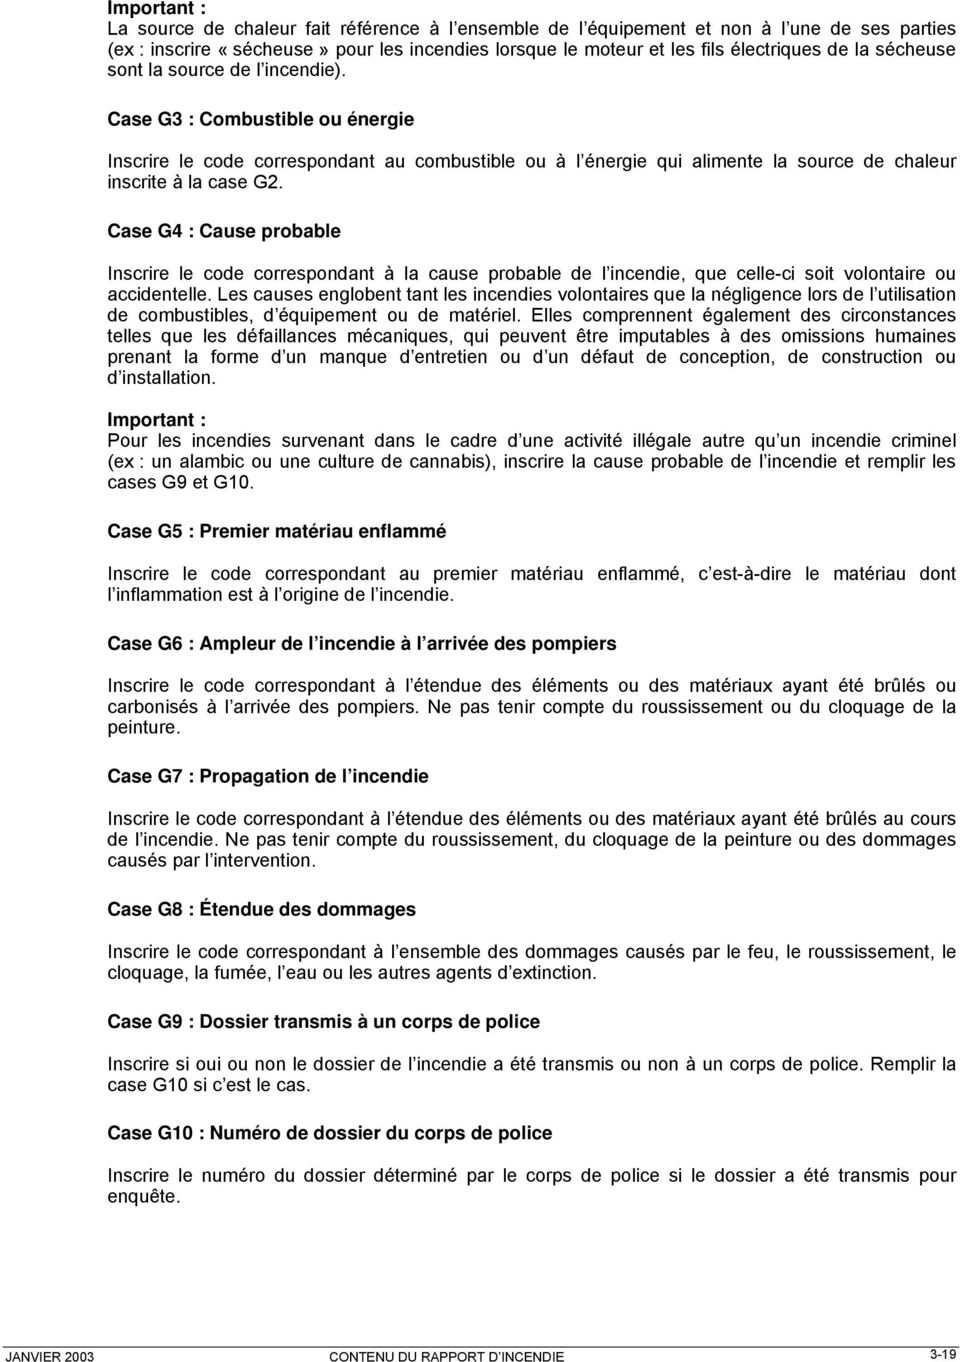 Case G4 : Cause probable Inscrire le code correspondant à la cause probable de l incendie, que celle-ci soit volontaire ou accidentelle.